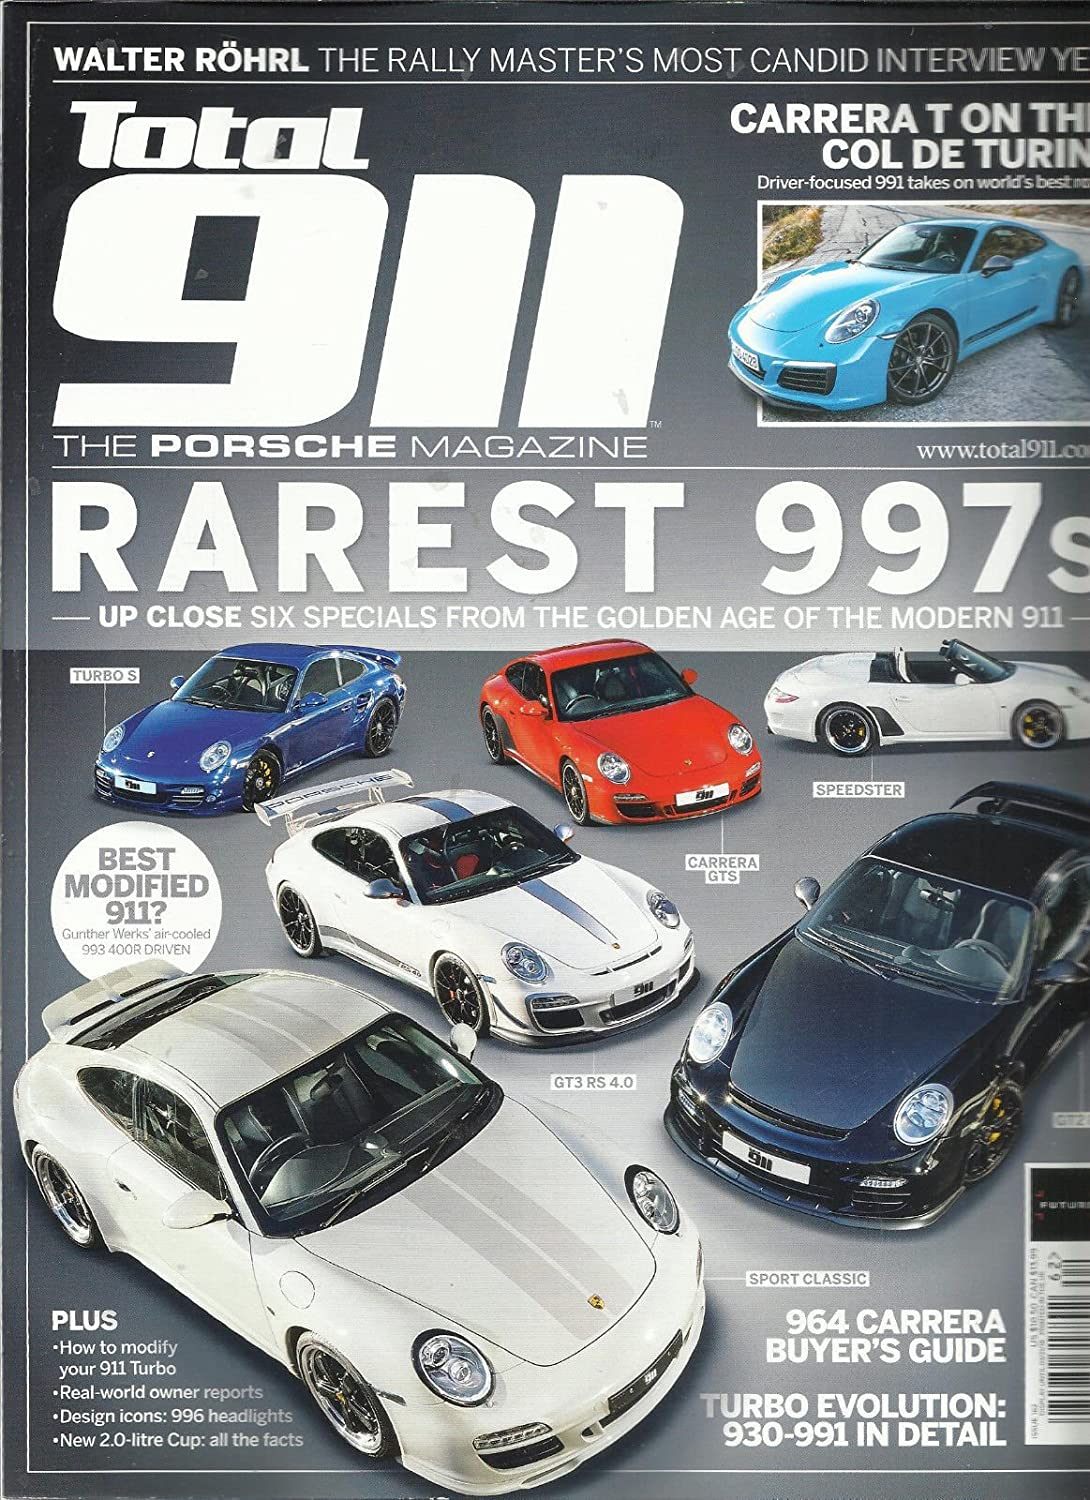 TOTAL 911 THE PORSCHE MAGAZINE, FEBRUARY, 2018 ISSUE # 162 PRINTED IN UK s3457